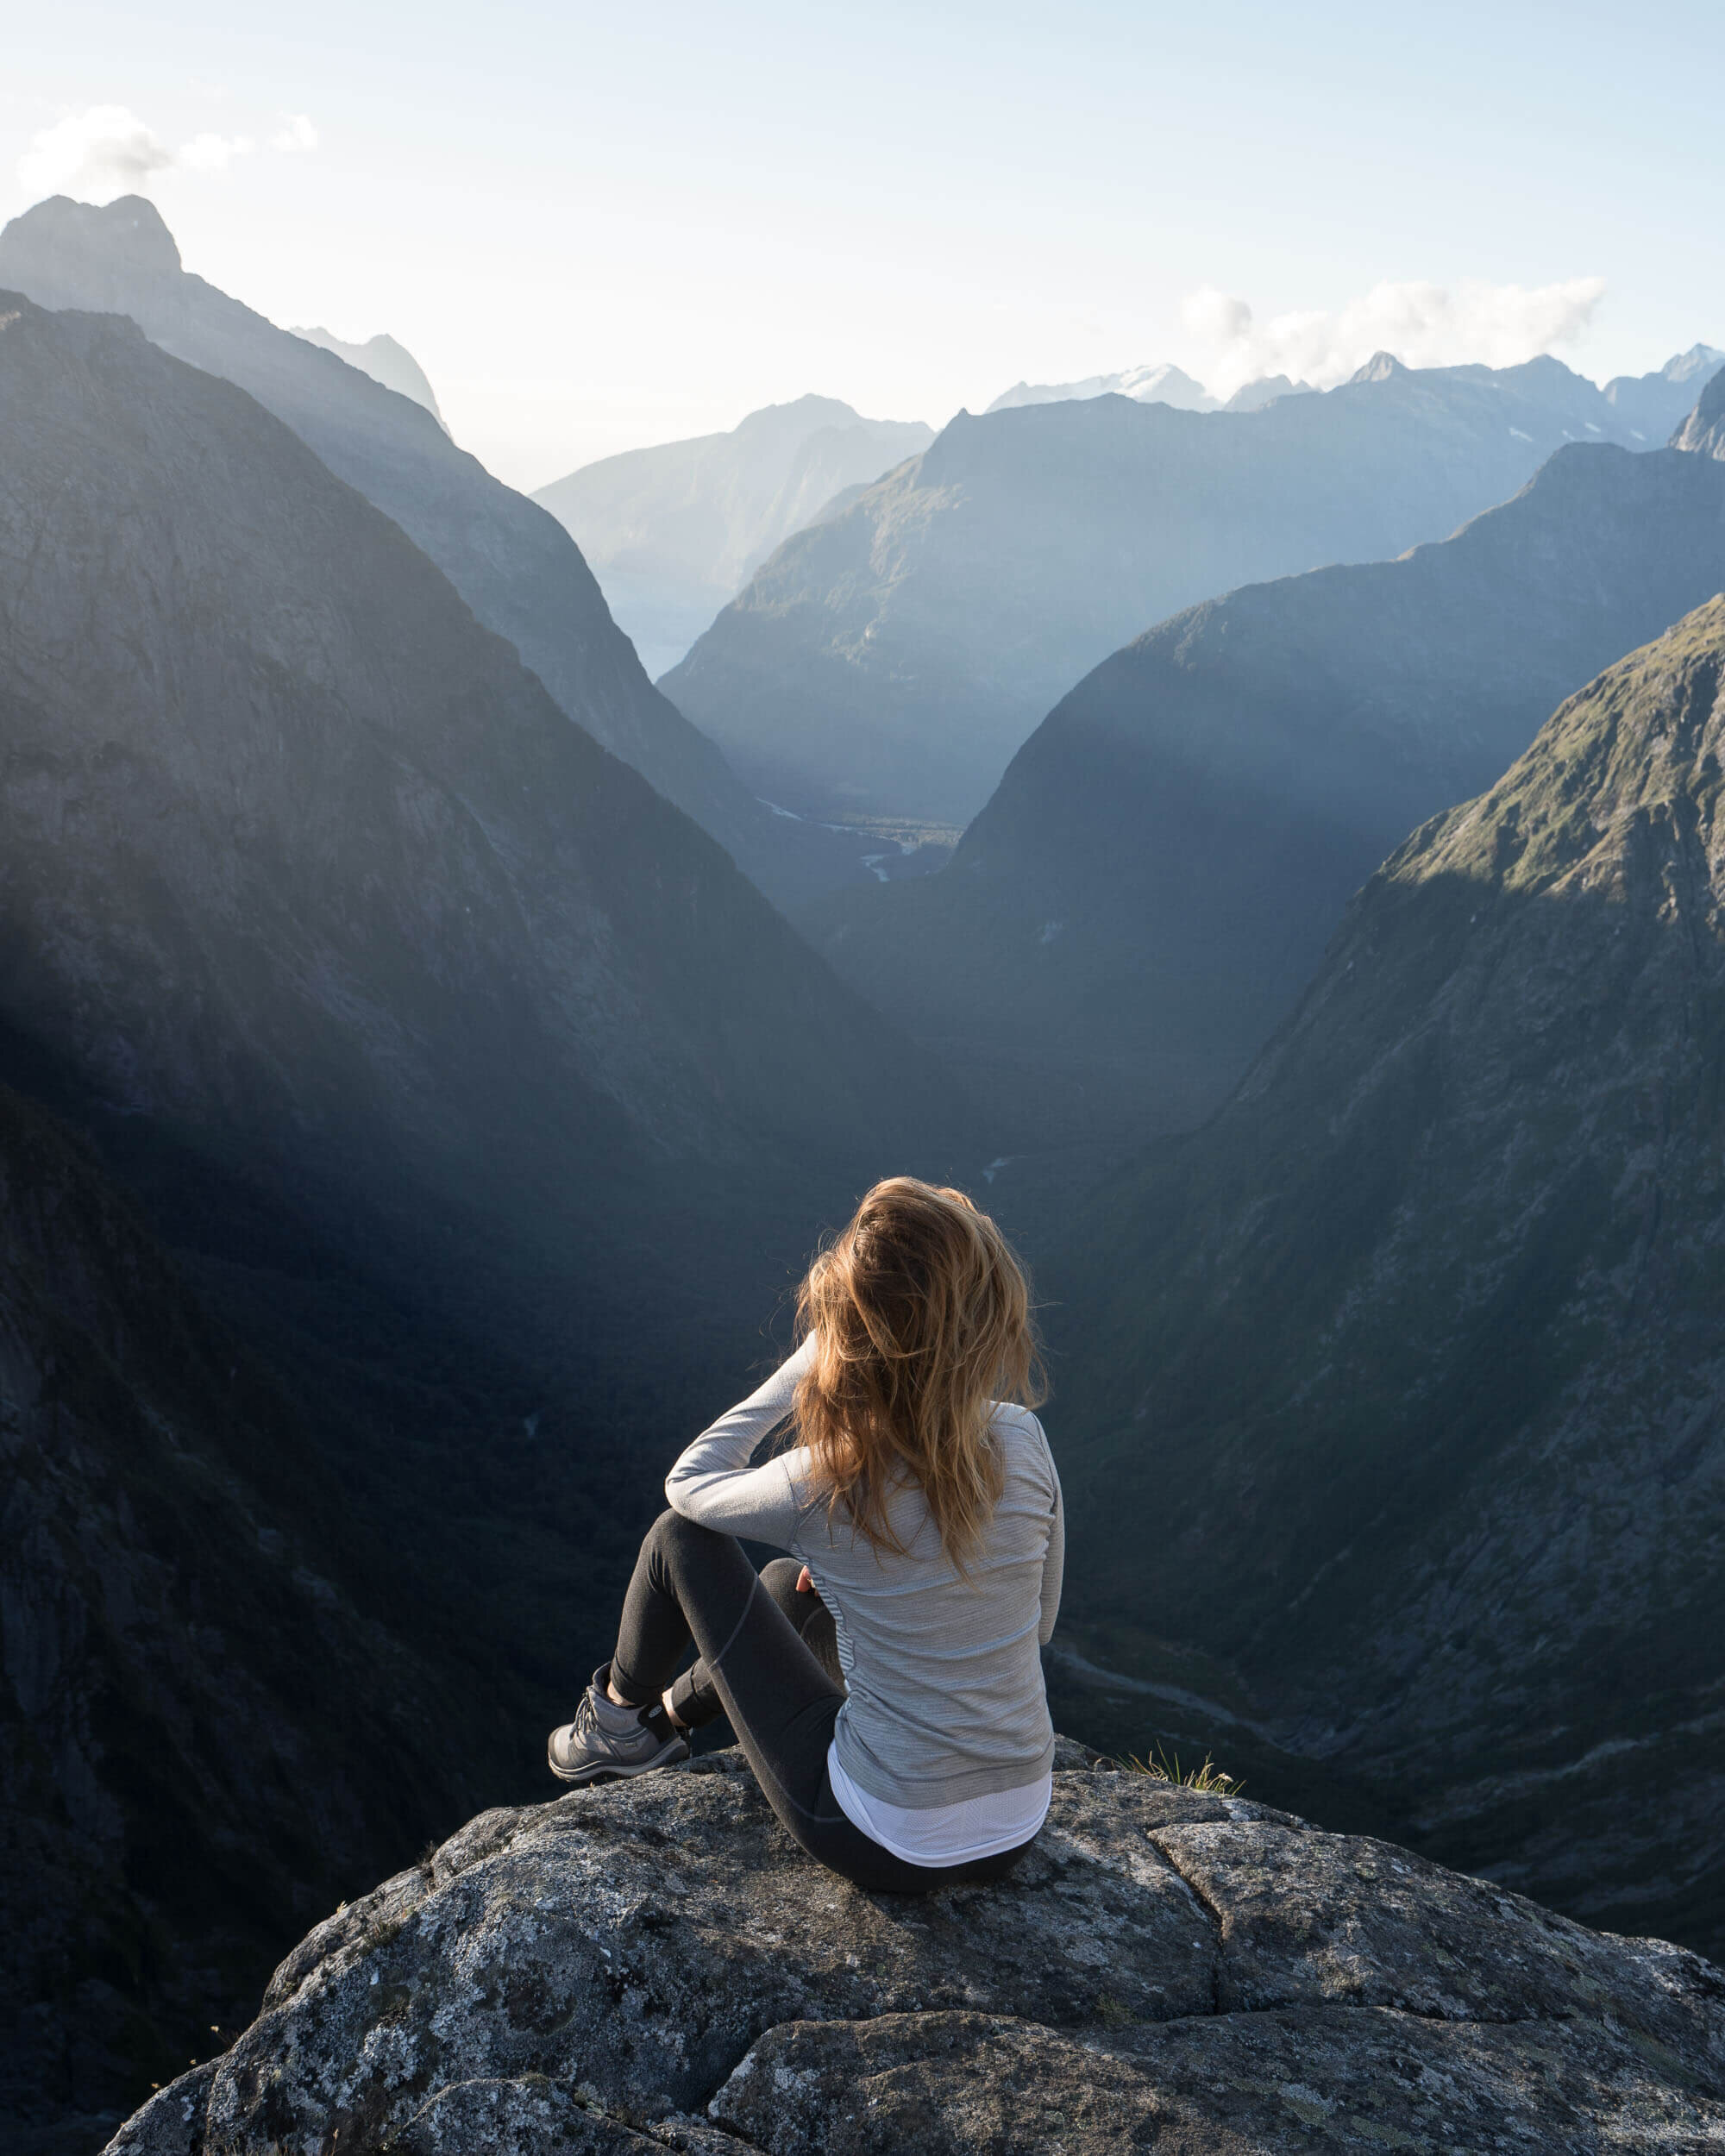 The view from the top of Gertrude Saddle down to Milford Sound.